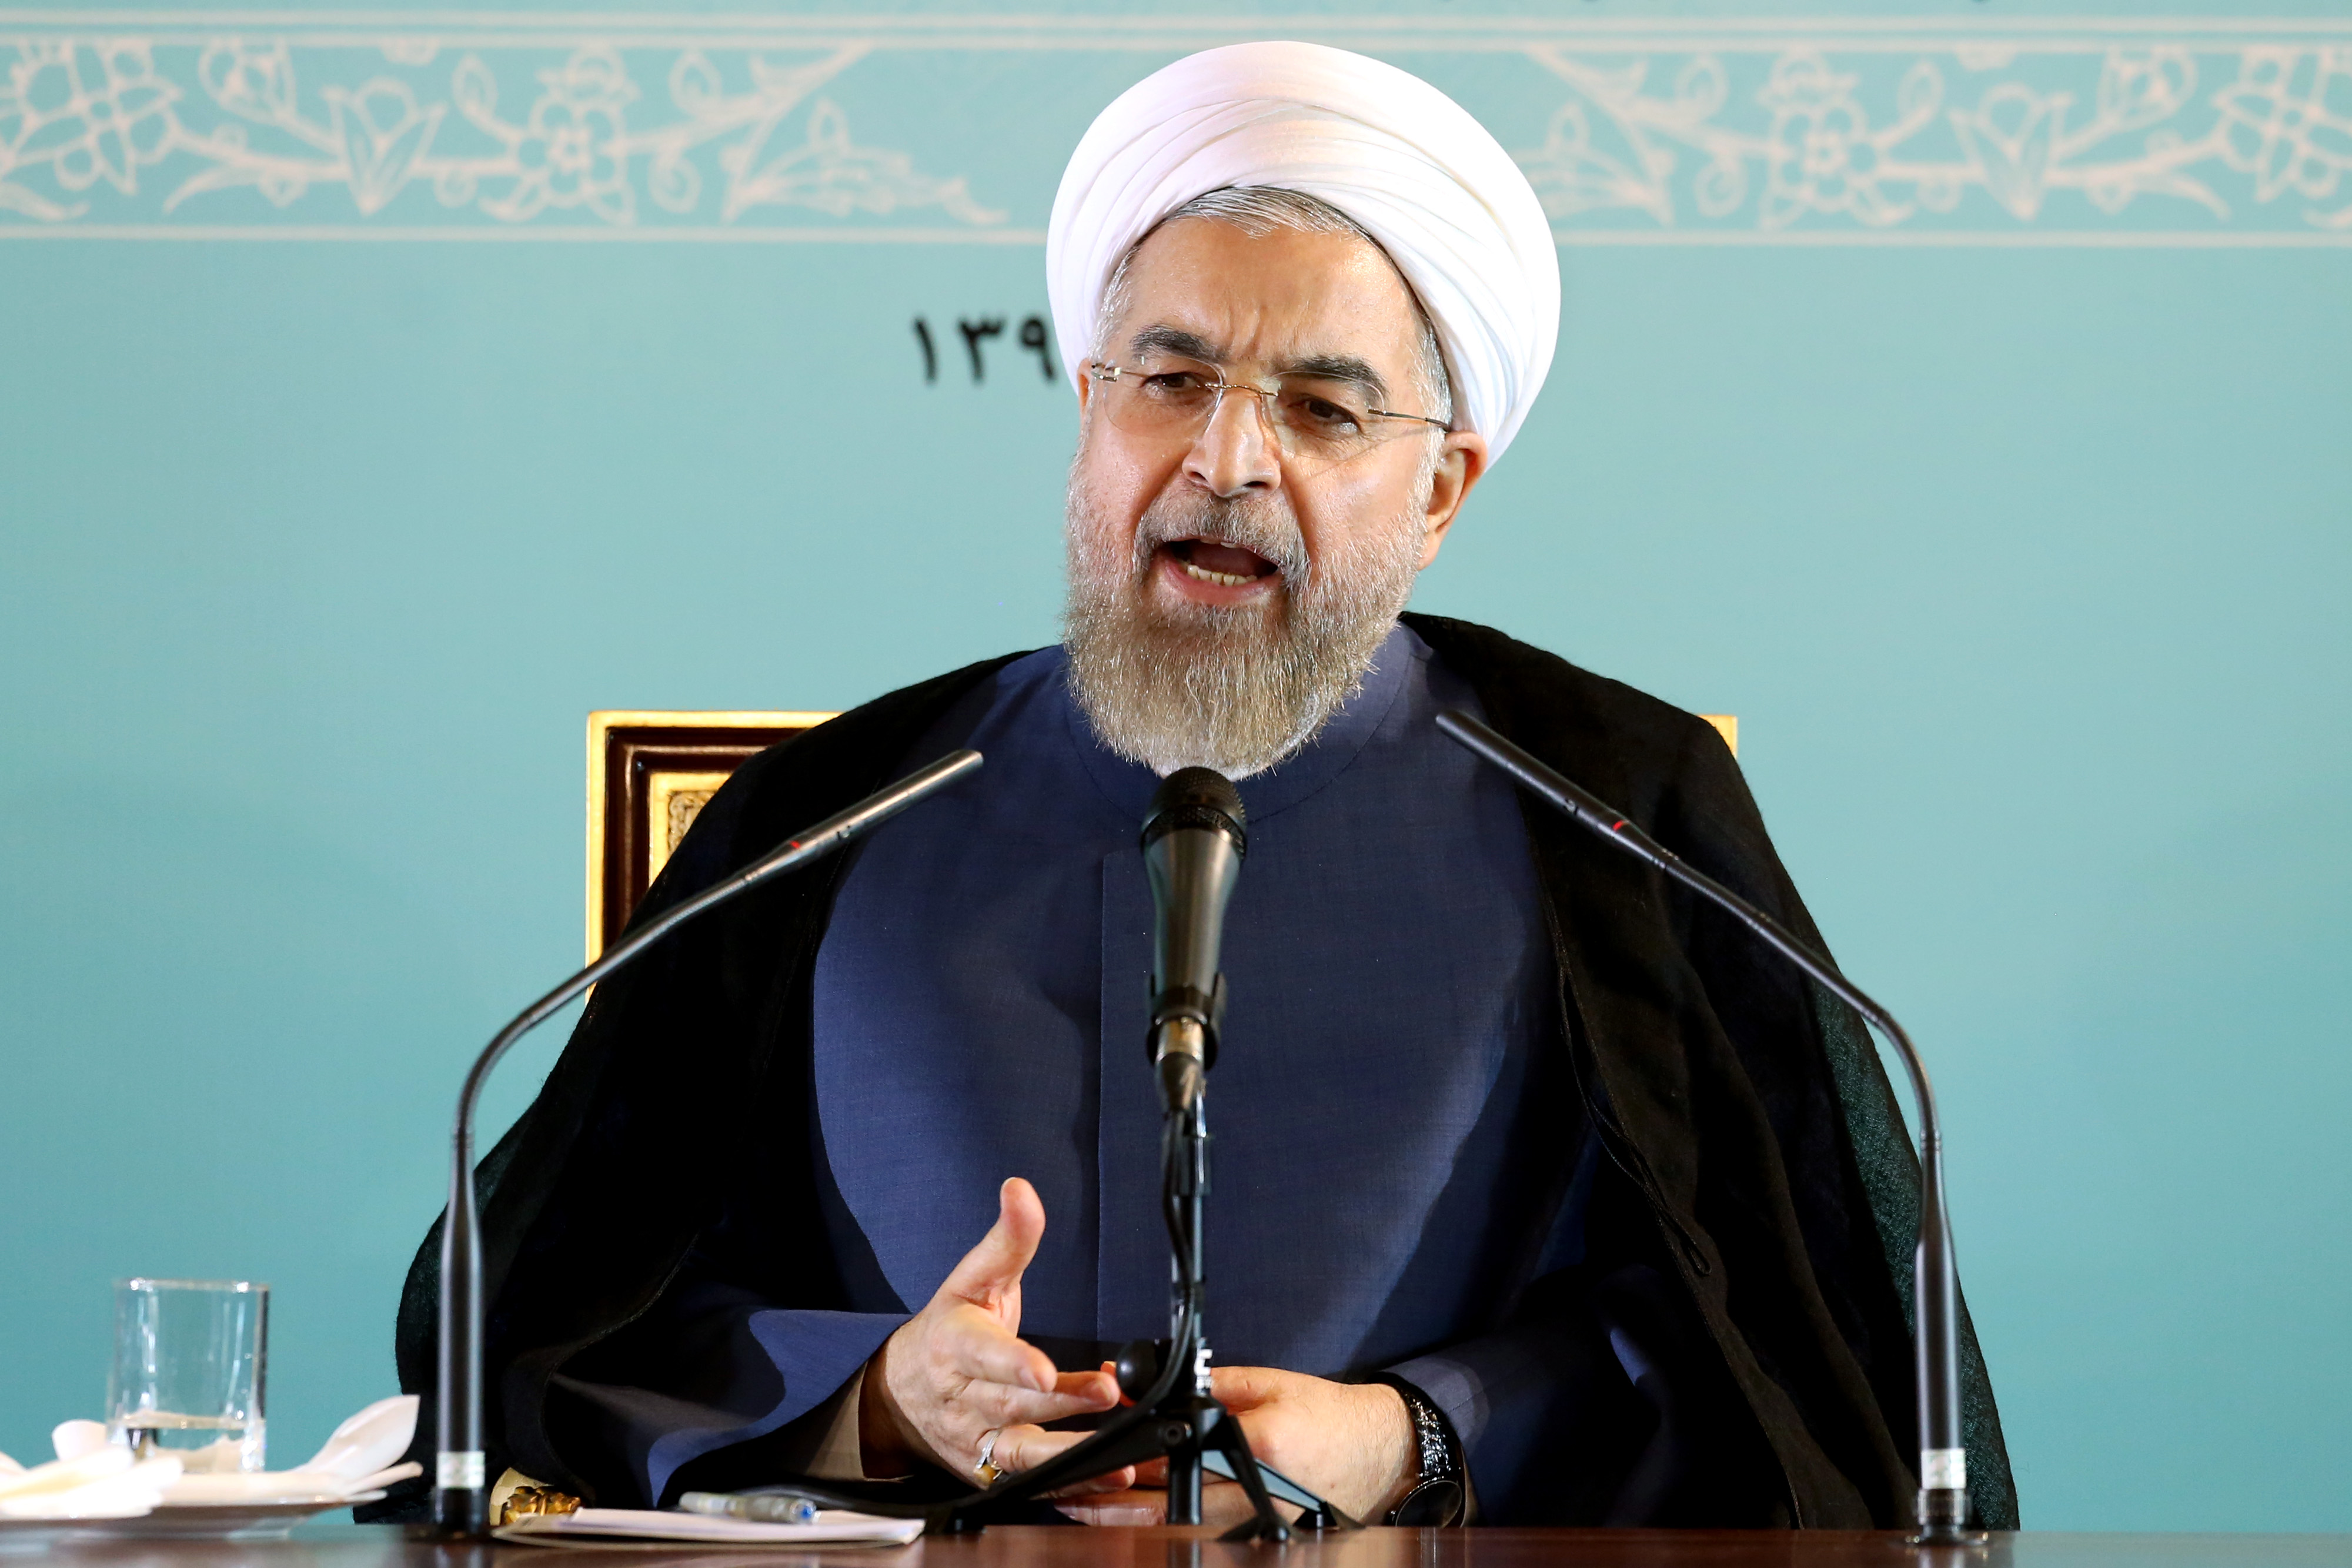 Iran's president has not delivered on pledges of more freedom: U.N.